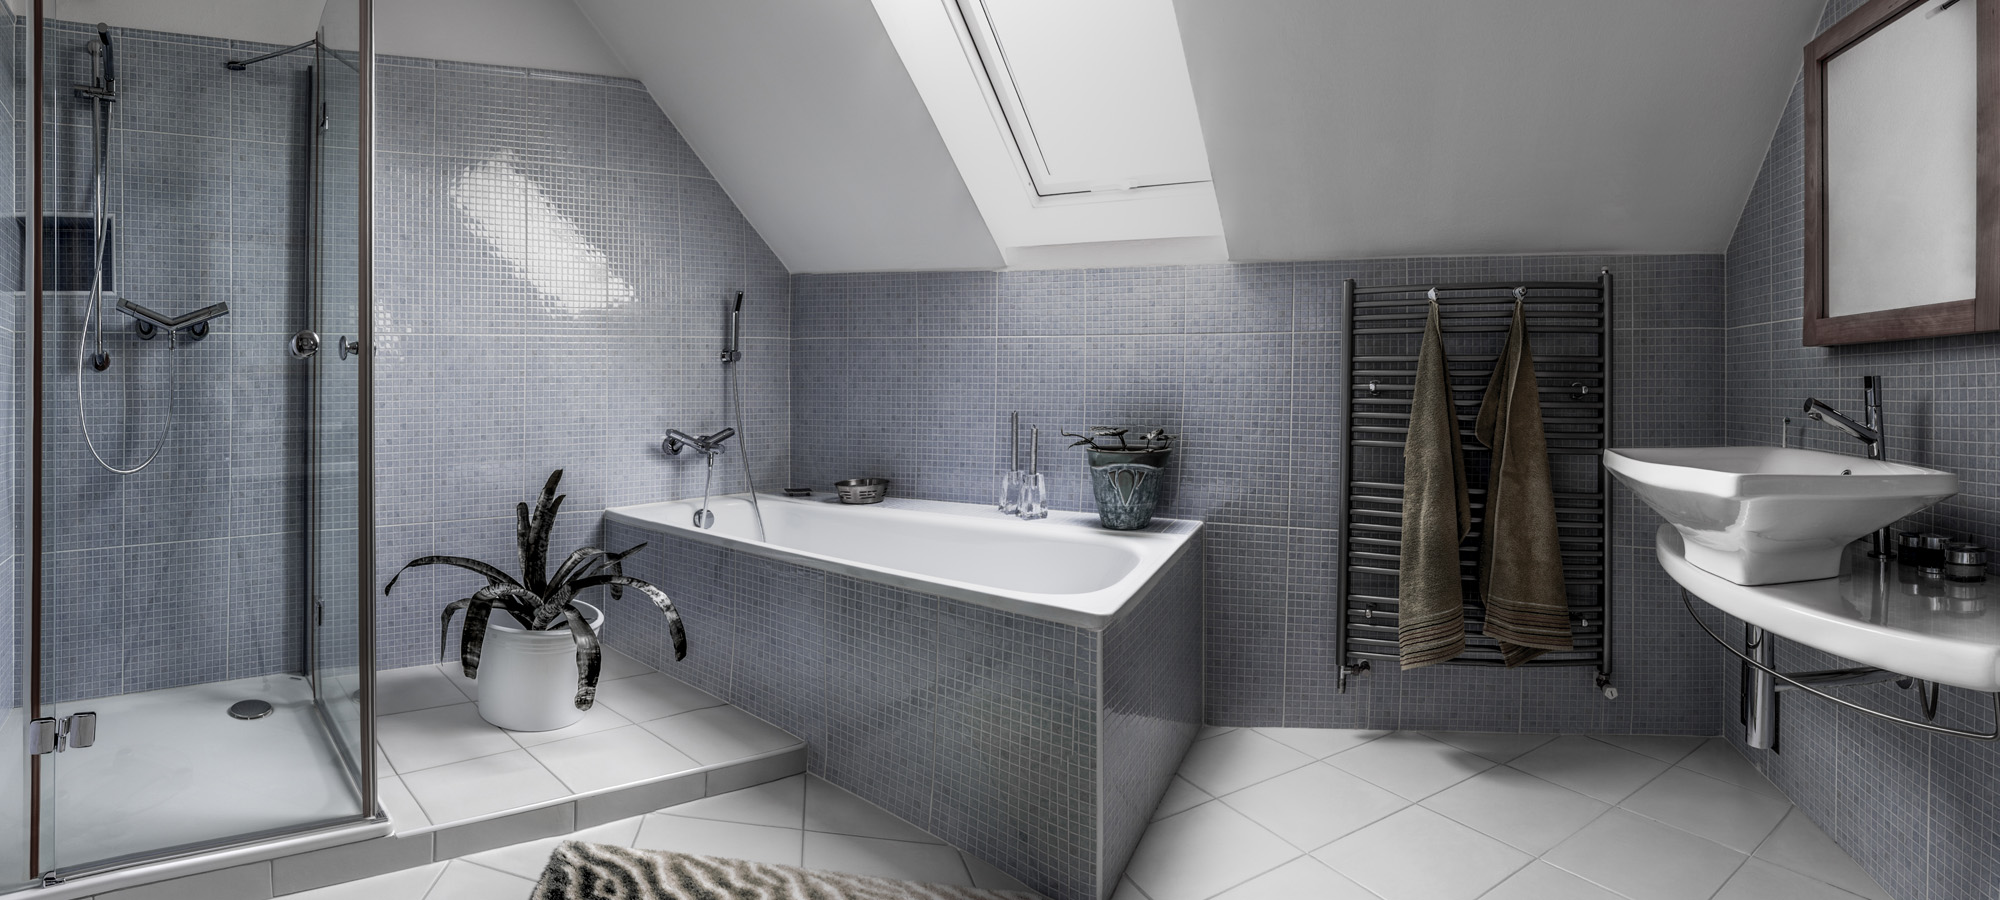 Bathroom Repair, Bath Tub Repair | Raleigh, NC   Bath Specialties